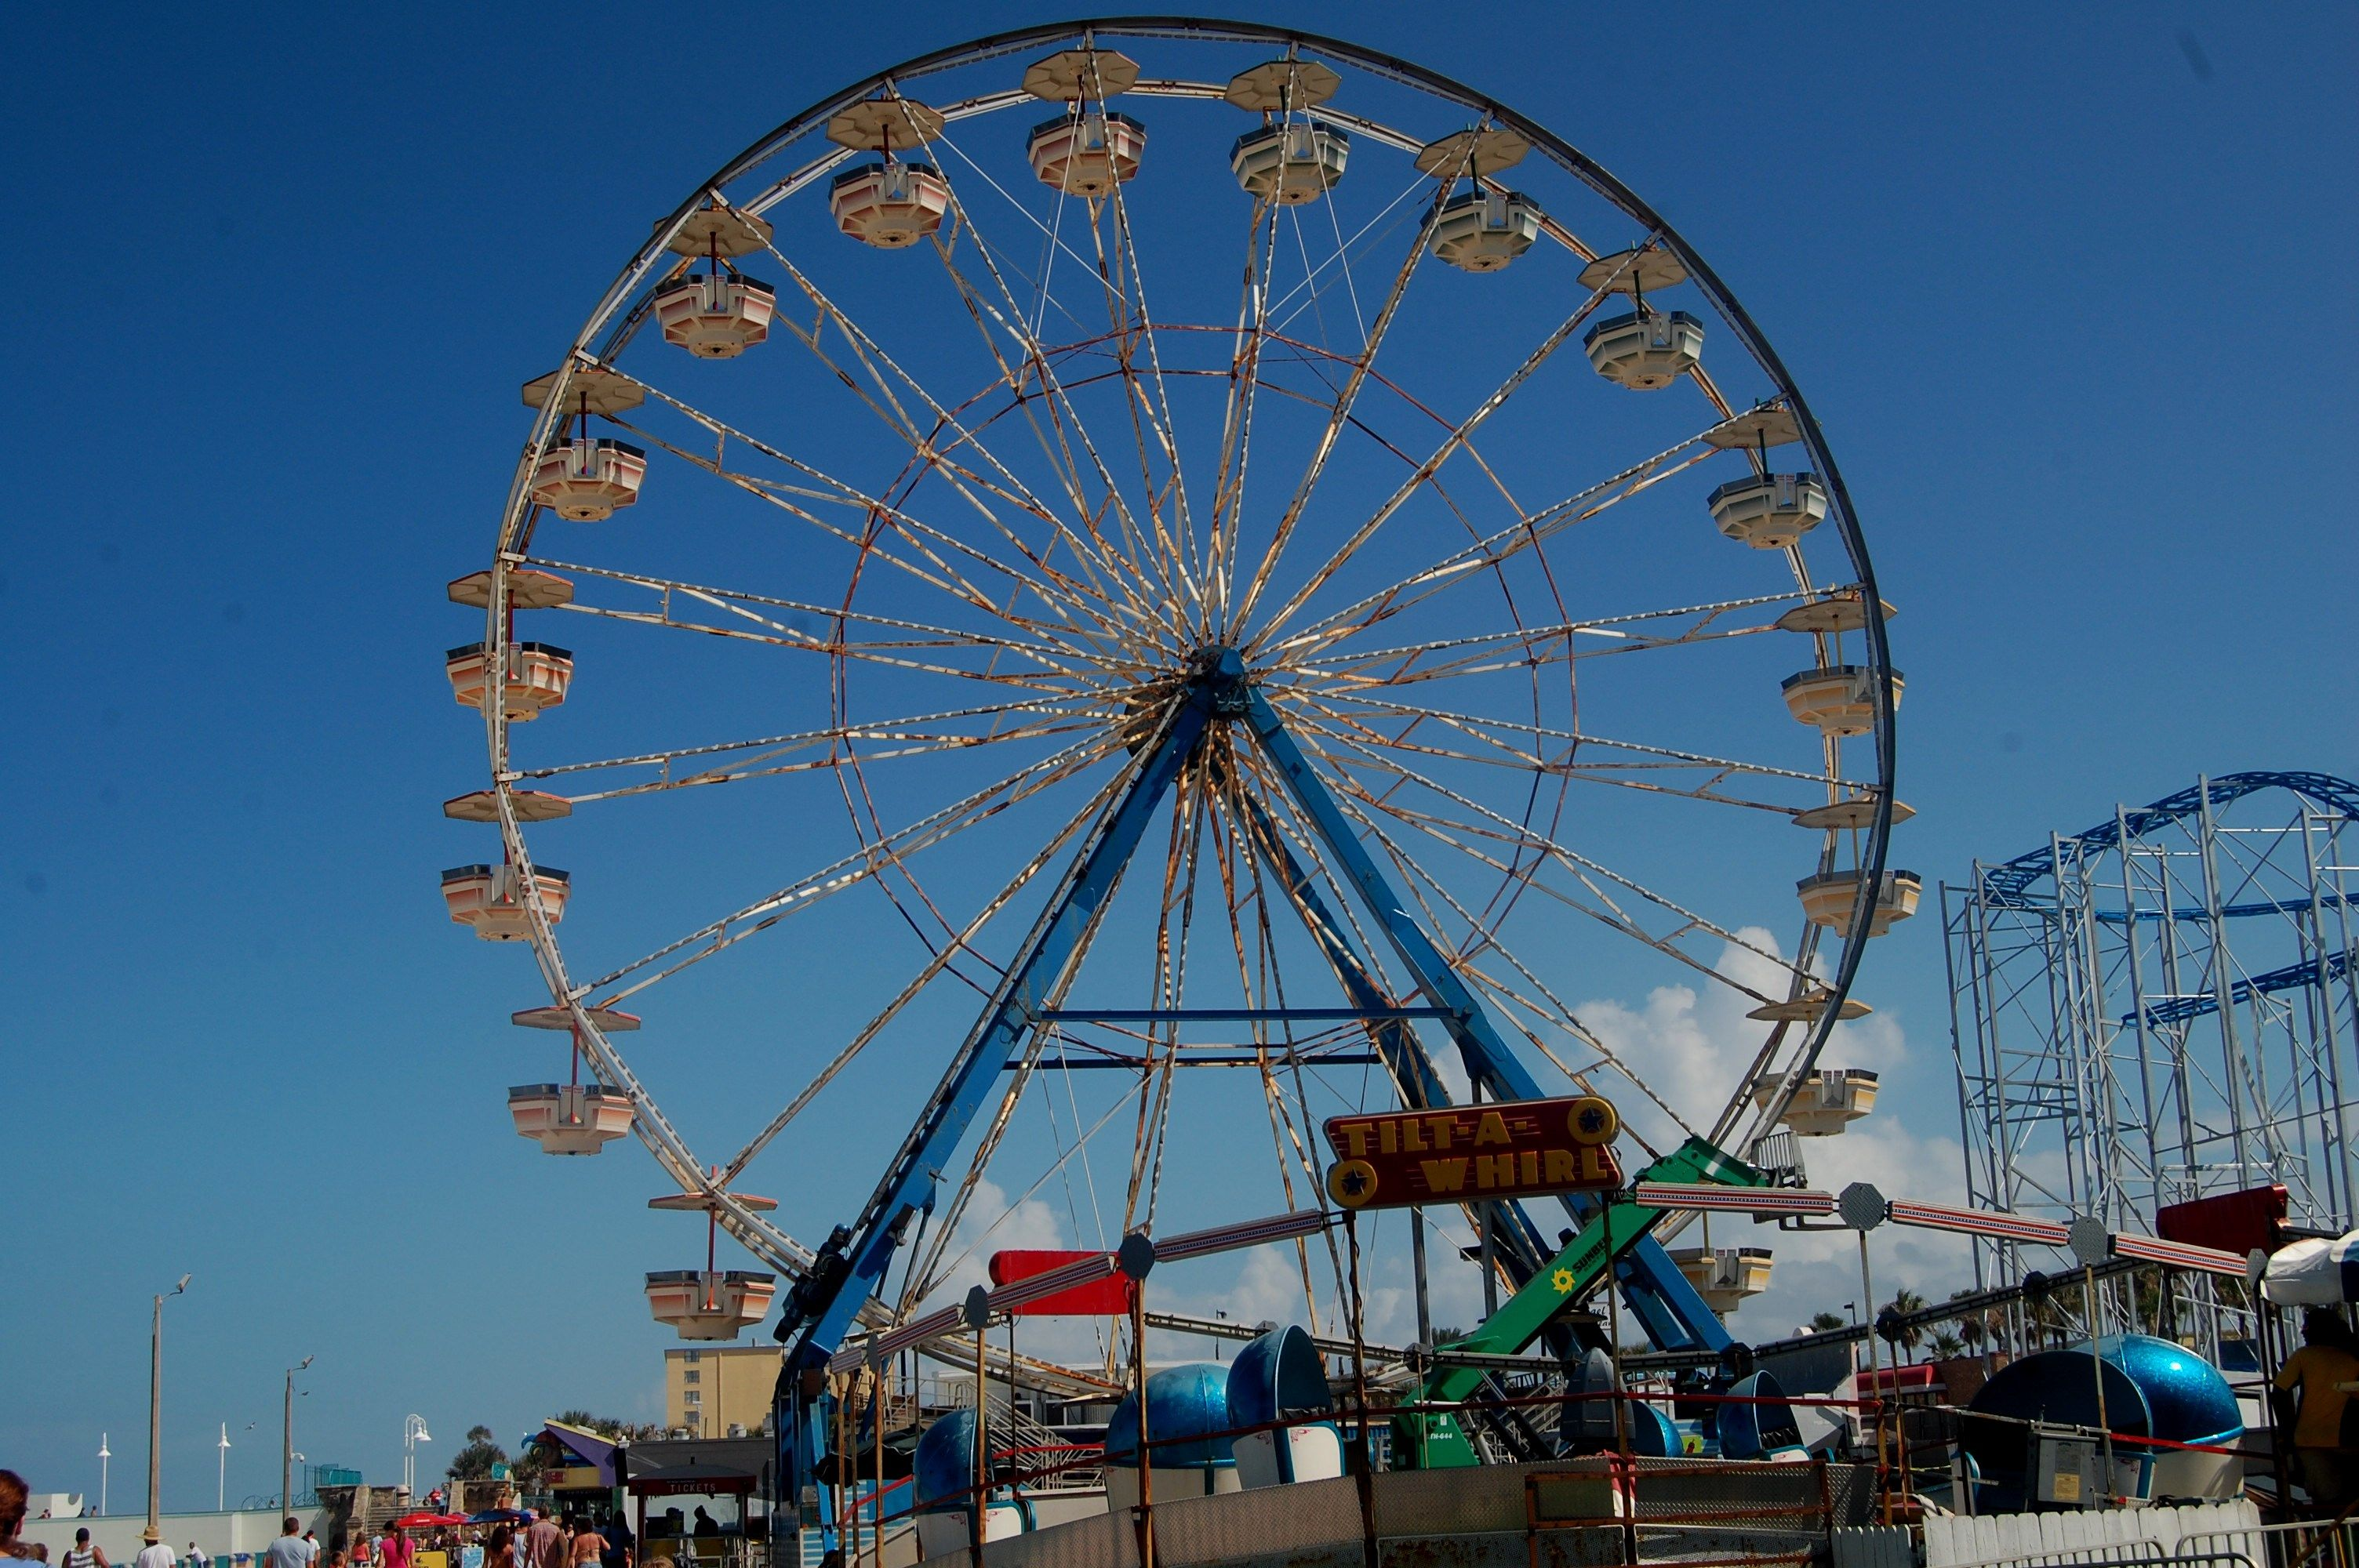 Ferris Wheel Daytona Beach Pier Fl